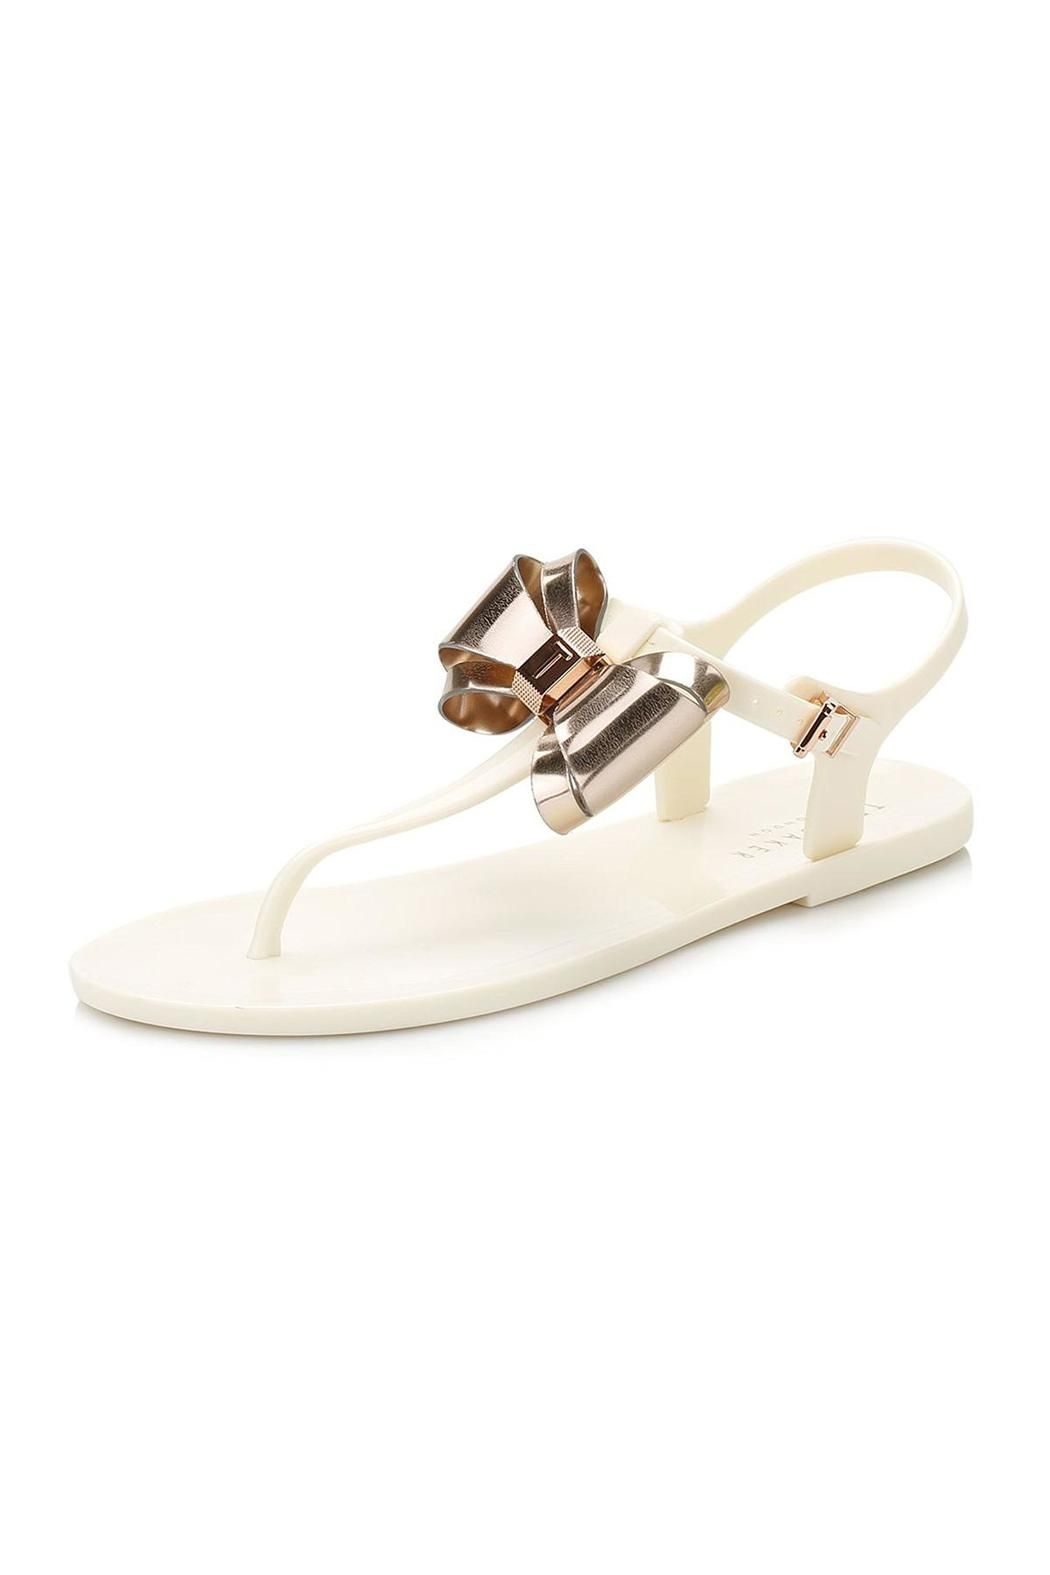 898ae83572b4 This pretty Ainda bow detail toe post flat sandal is great for sunny days.  Showcasing a statement layered bow trim with brand detailing.